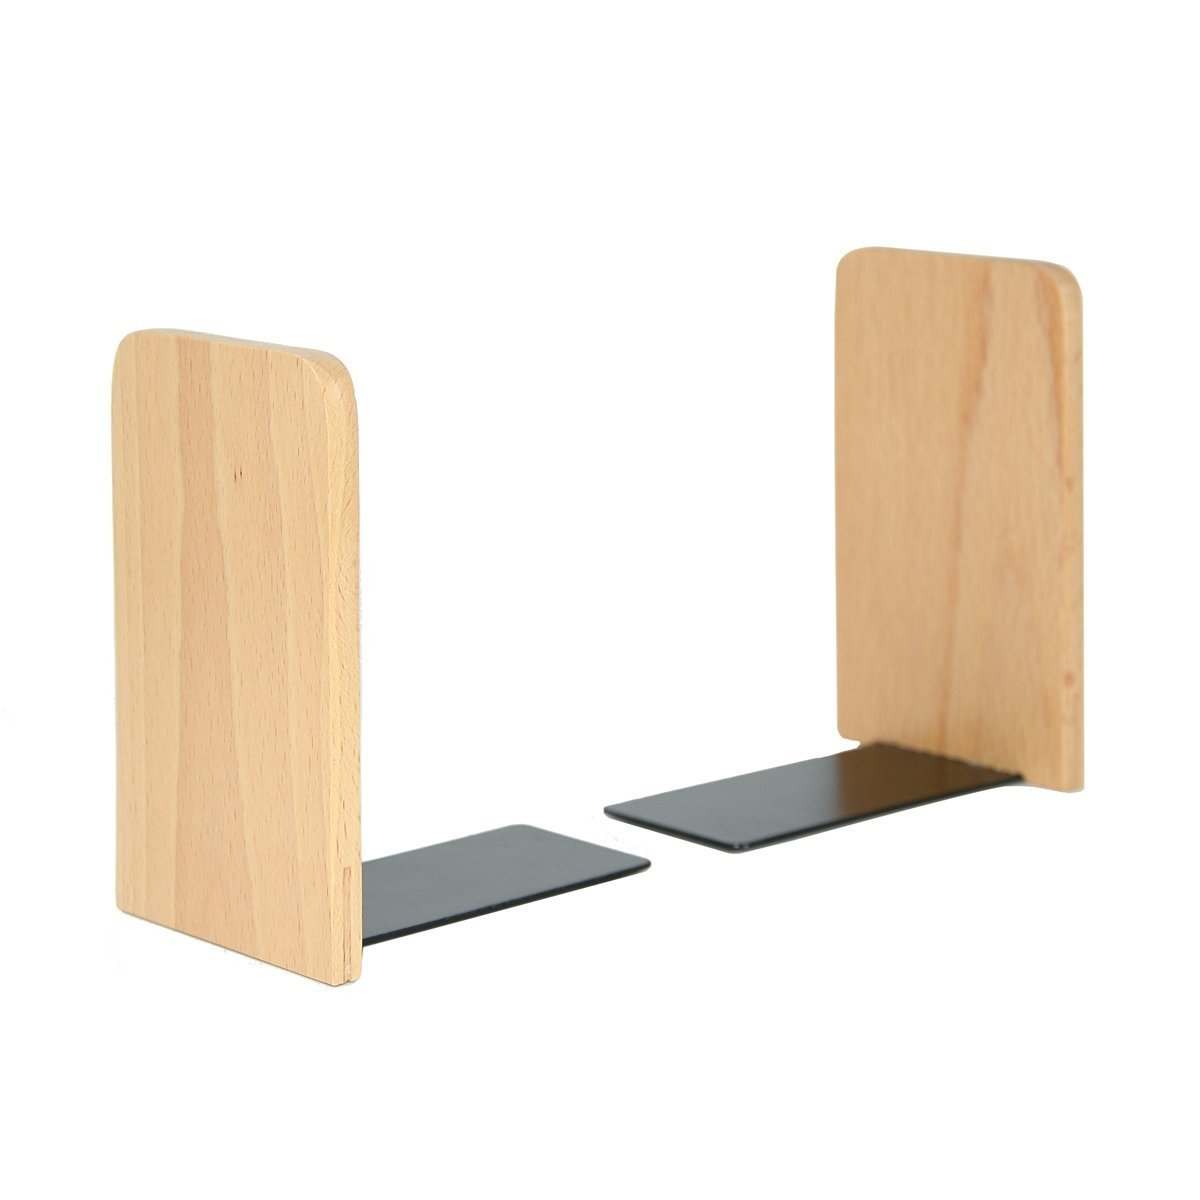 Pandapark Wood and Steel Bookends,Pack of 1 Pair,Non-Skid,German Beech Office Book Stand (Beech-A)